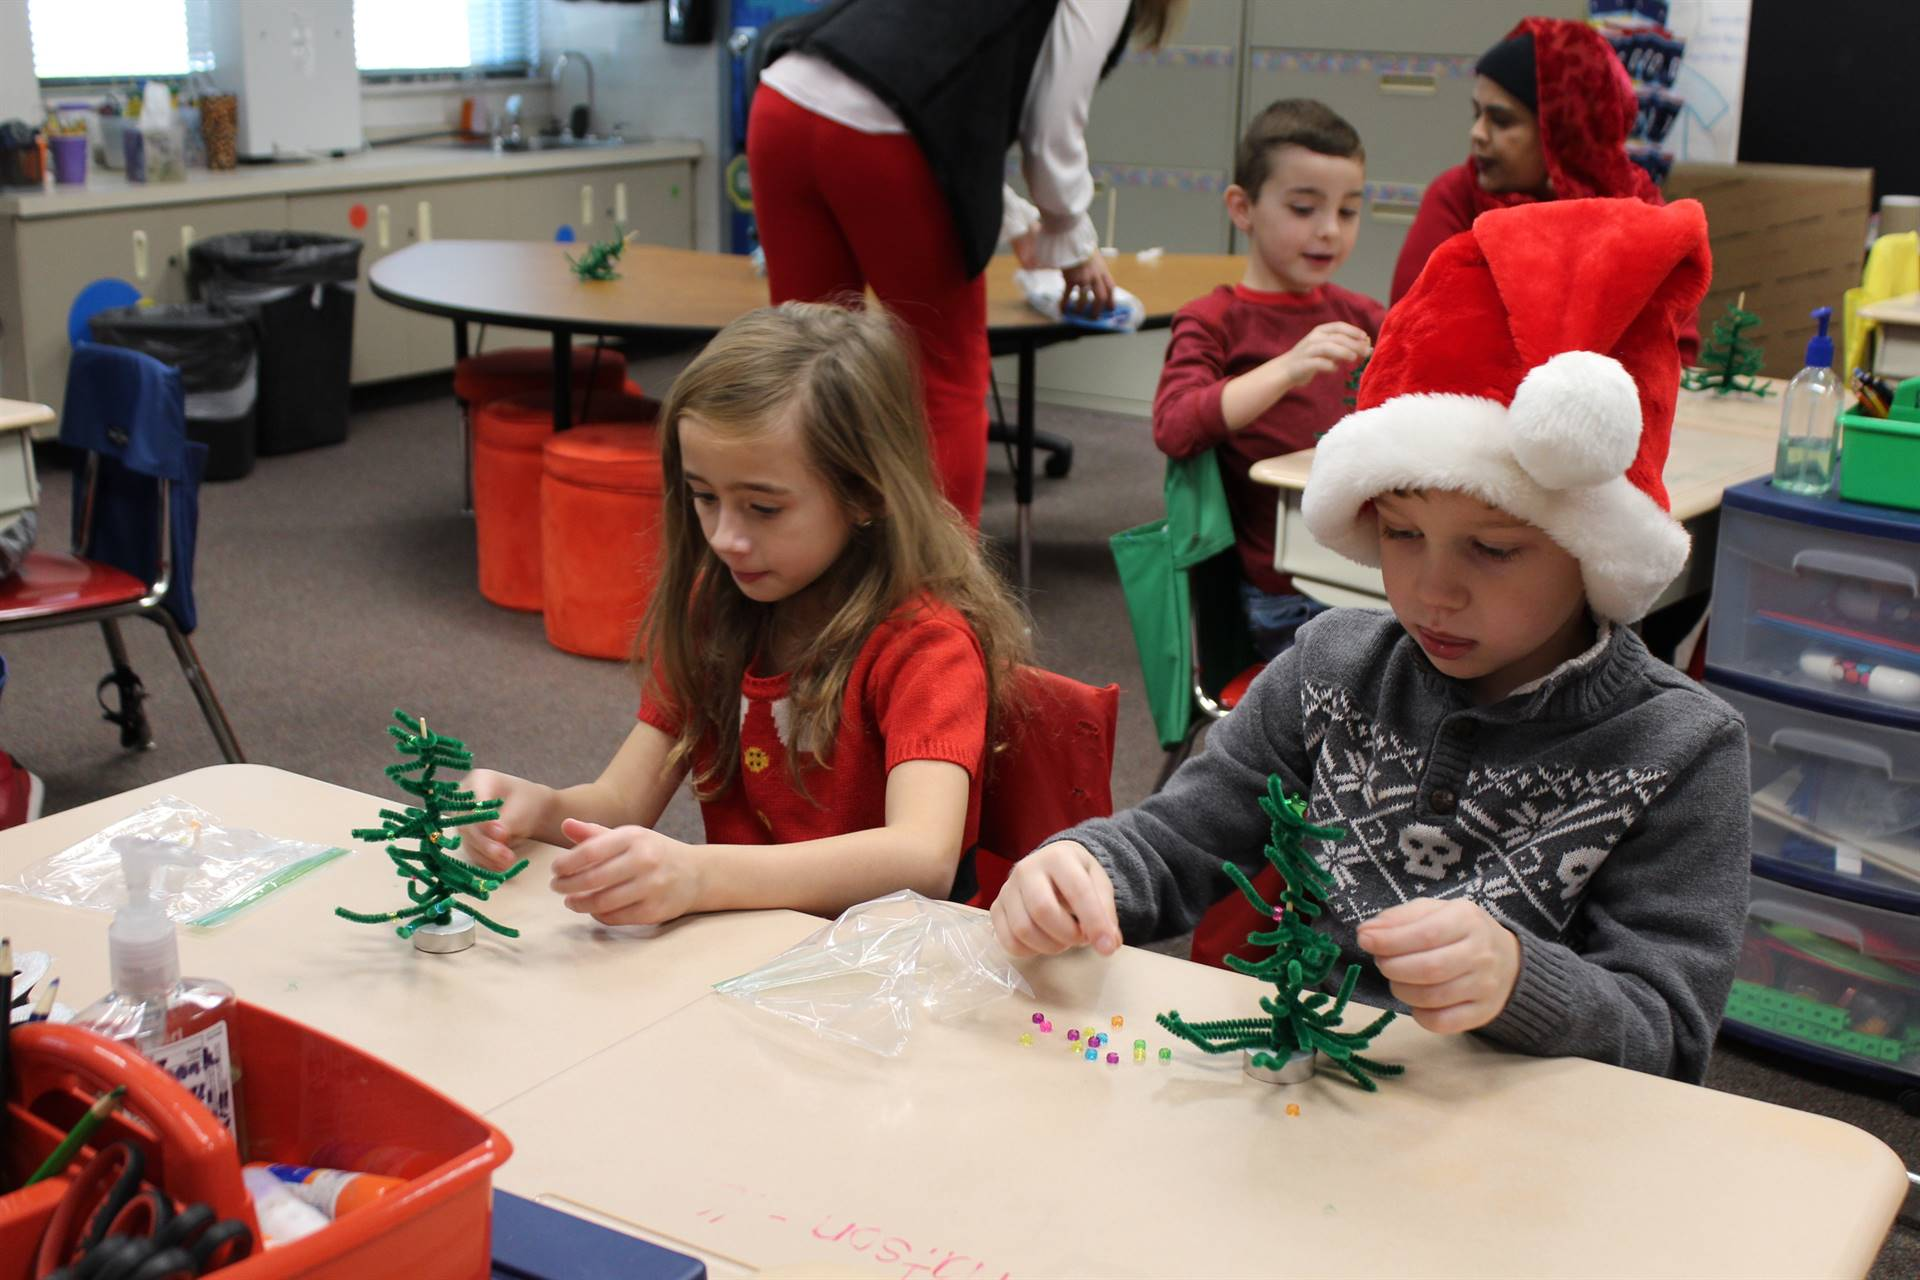 Two students making Christmas trees